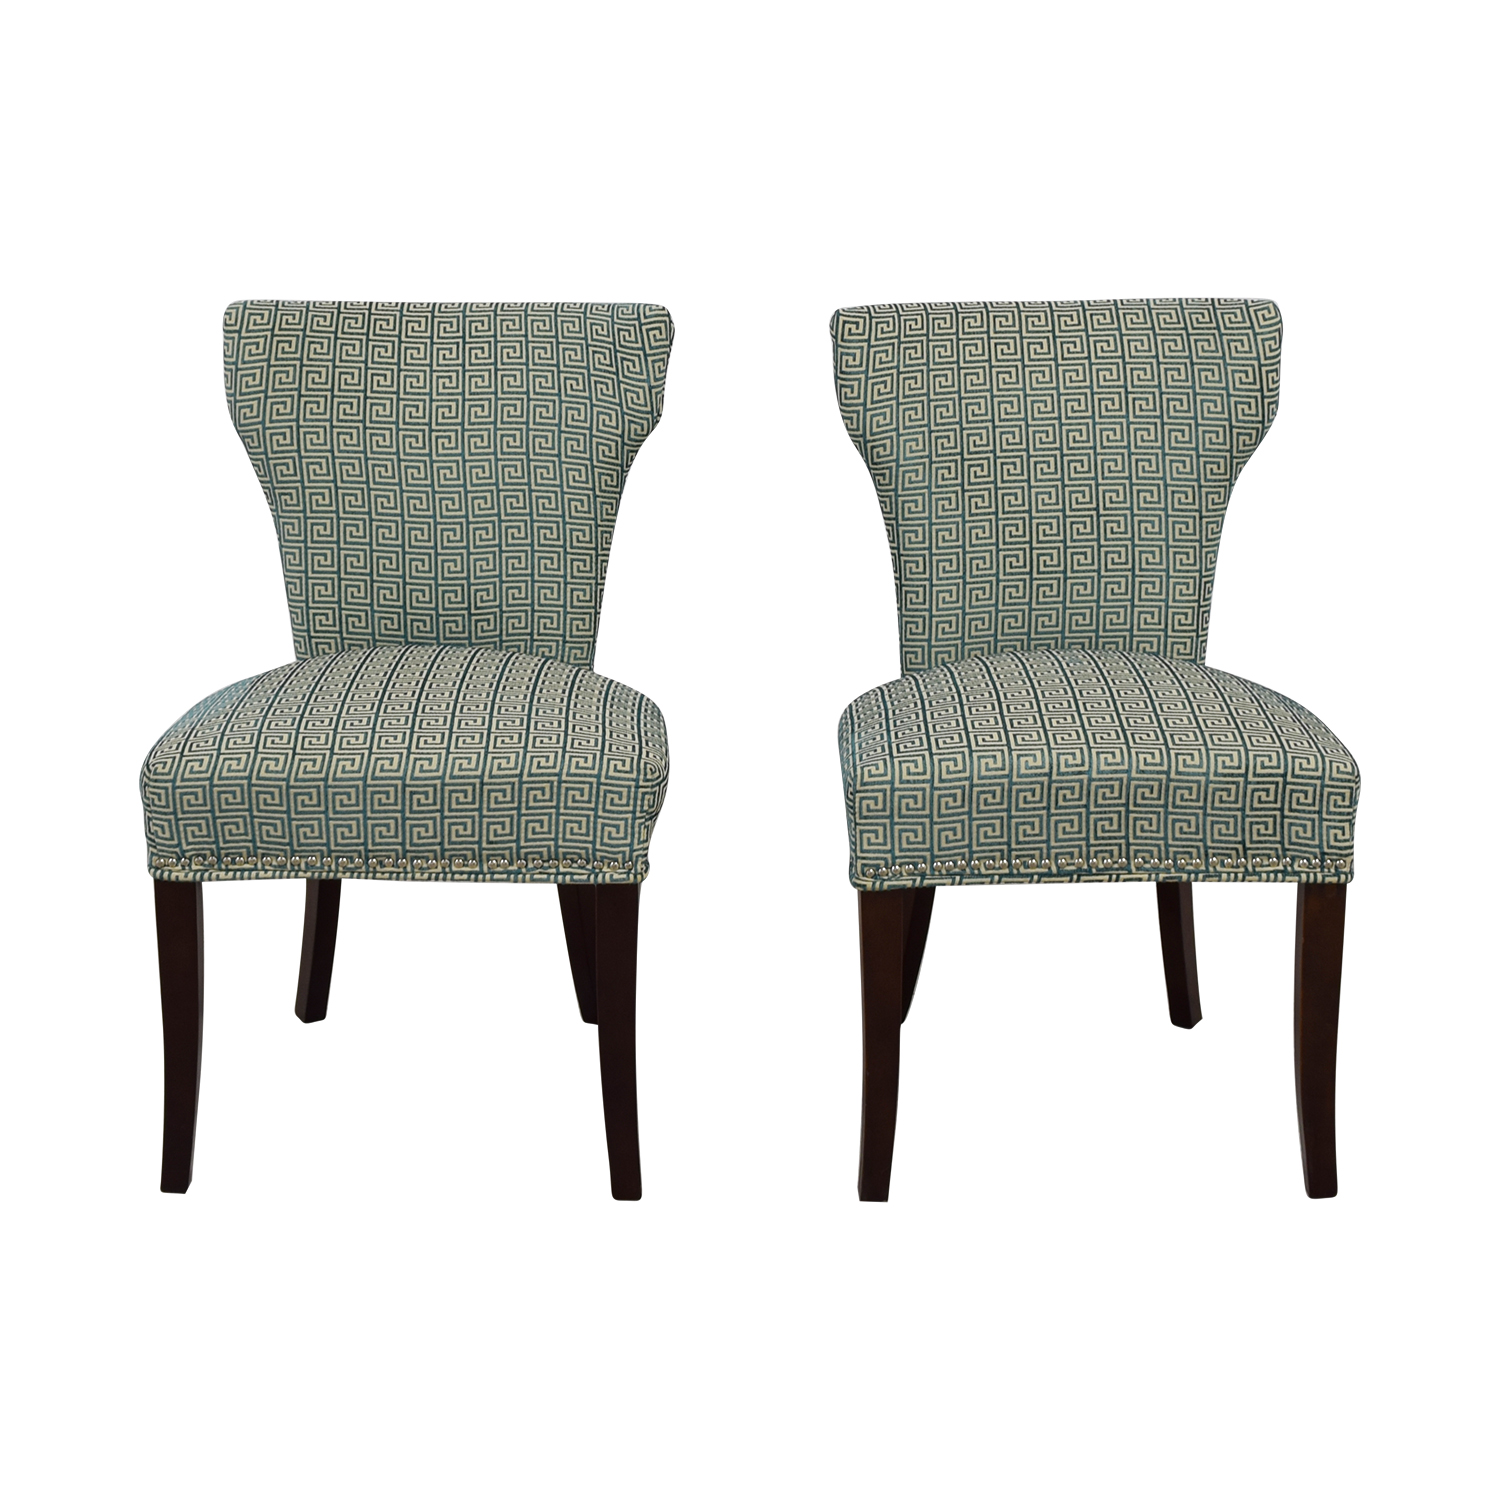 cynthia rowley chairs for sale a bedroom desk 90 off art deco white and gold accent chair